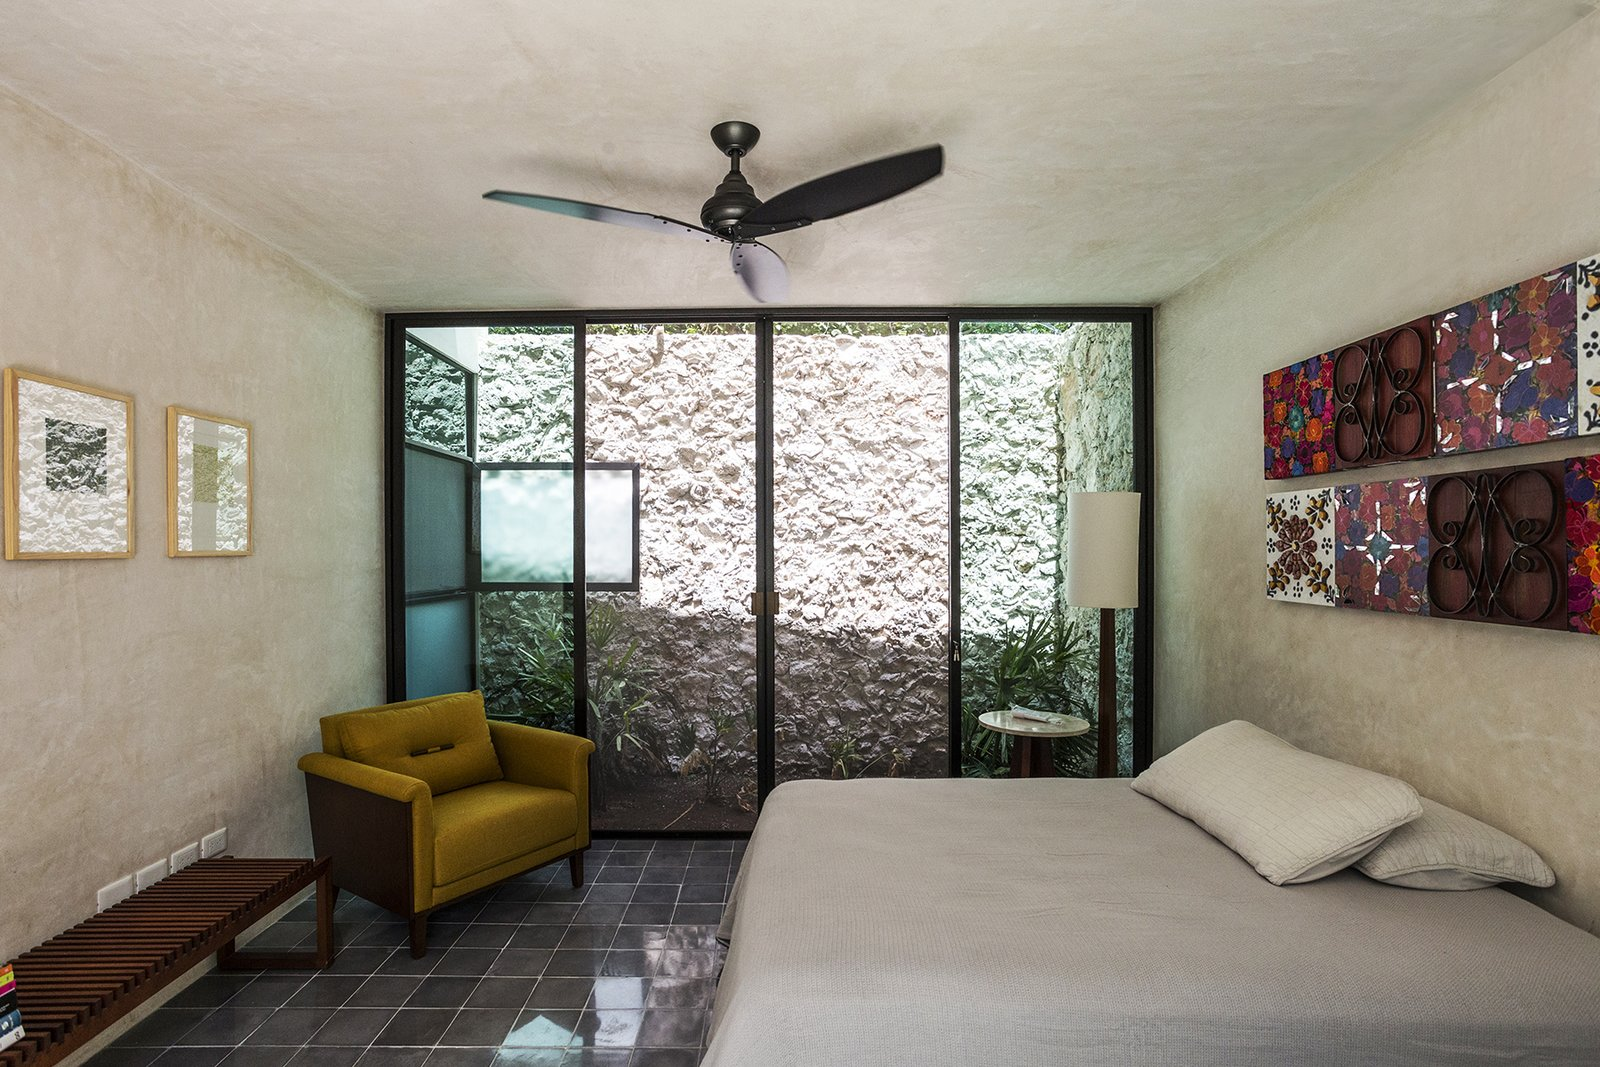 Bedroom, Chair, Cement Tile Floor, Lamps, and Bed A Light well provide natural light and ventilation to the downstairs bedroom  Lemon Tree House by Taller Estilo Arquitectura S de R.L de C.V